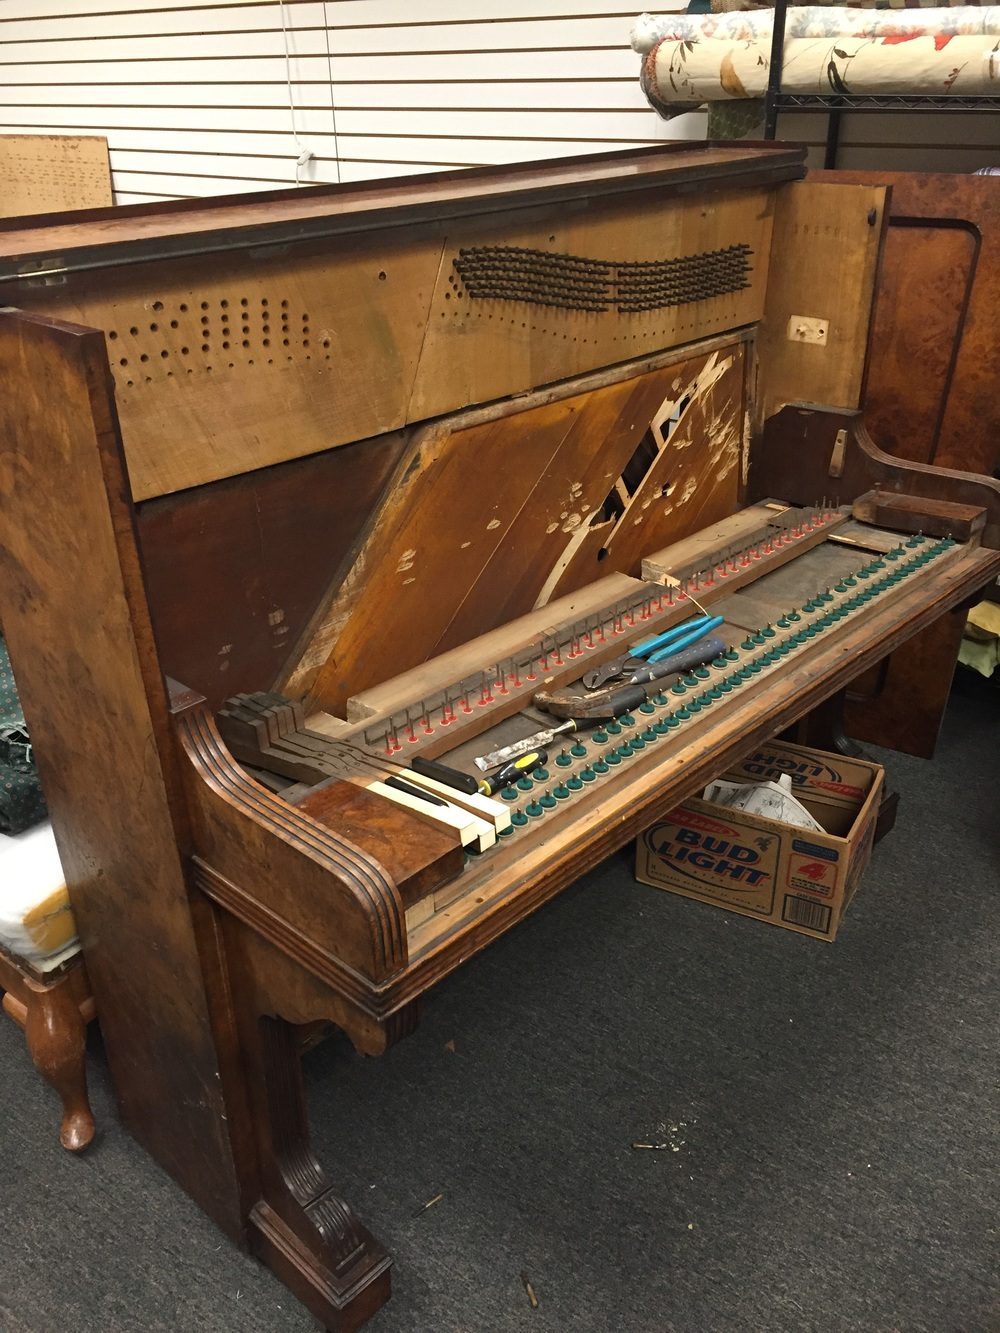 The piano as it arrived in our shop. This was definitely an ugly duckling phase!